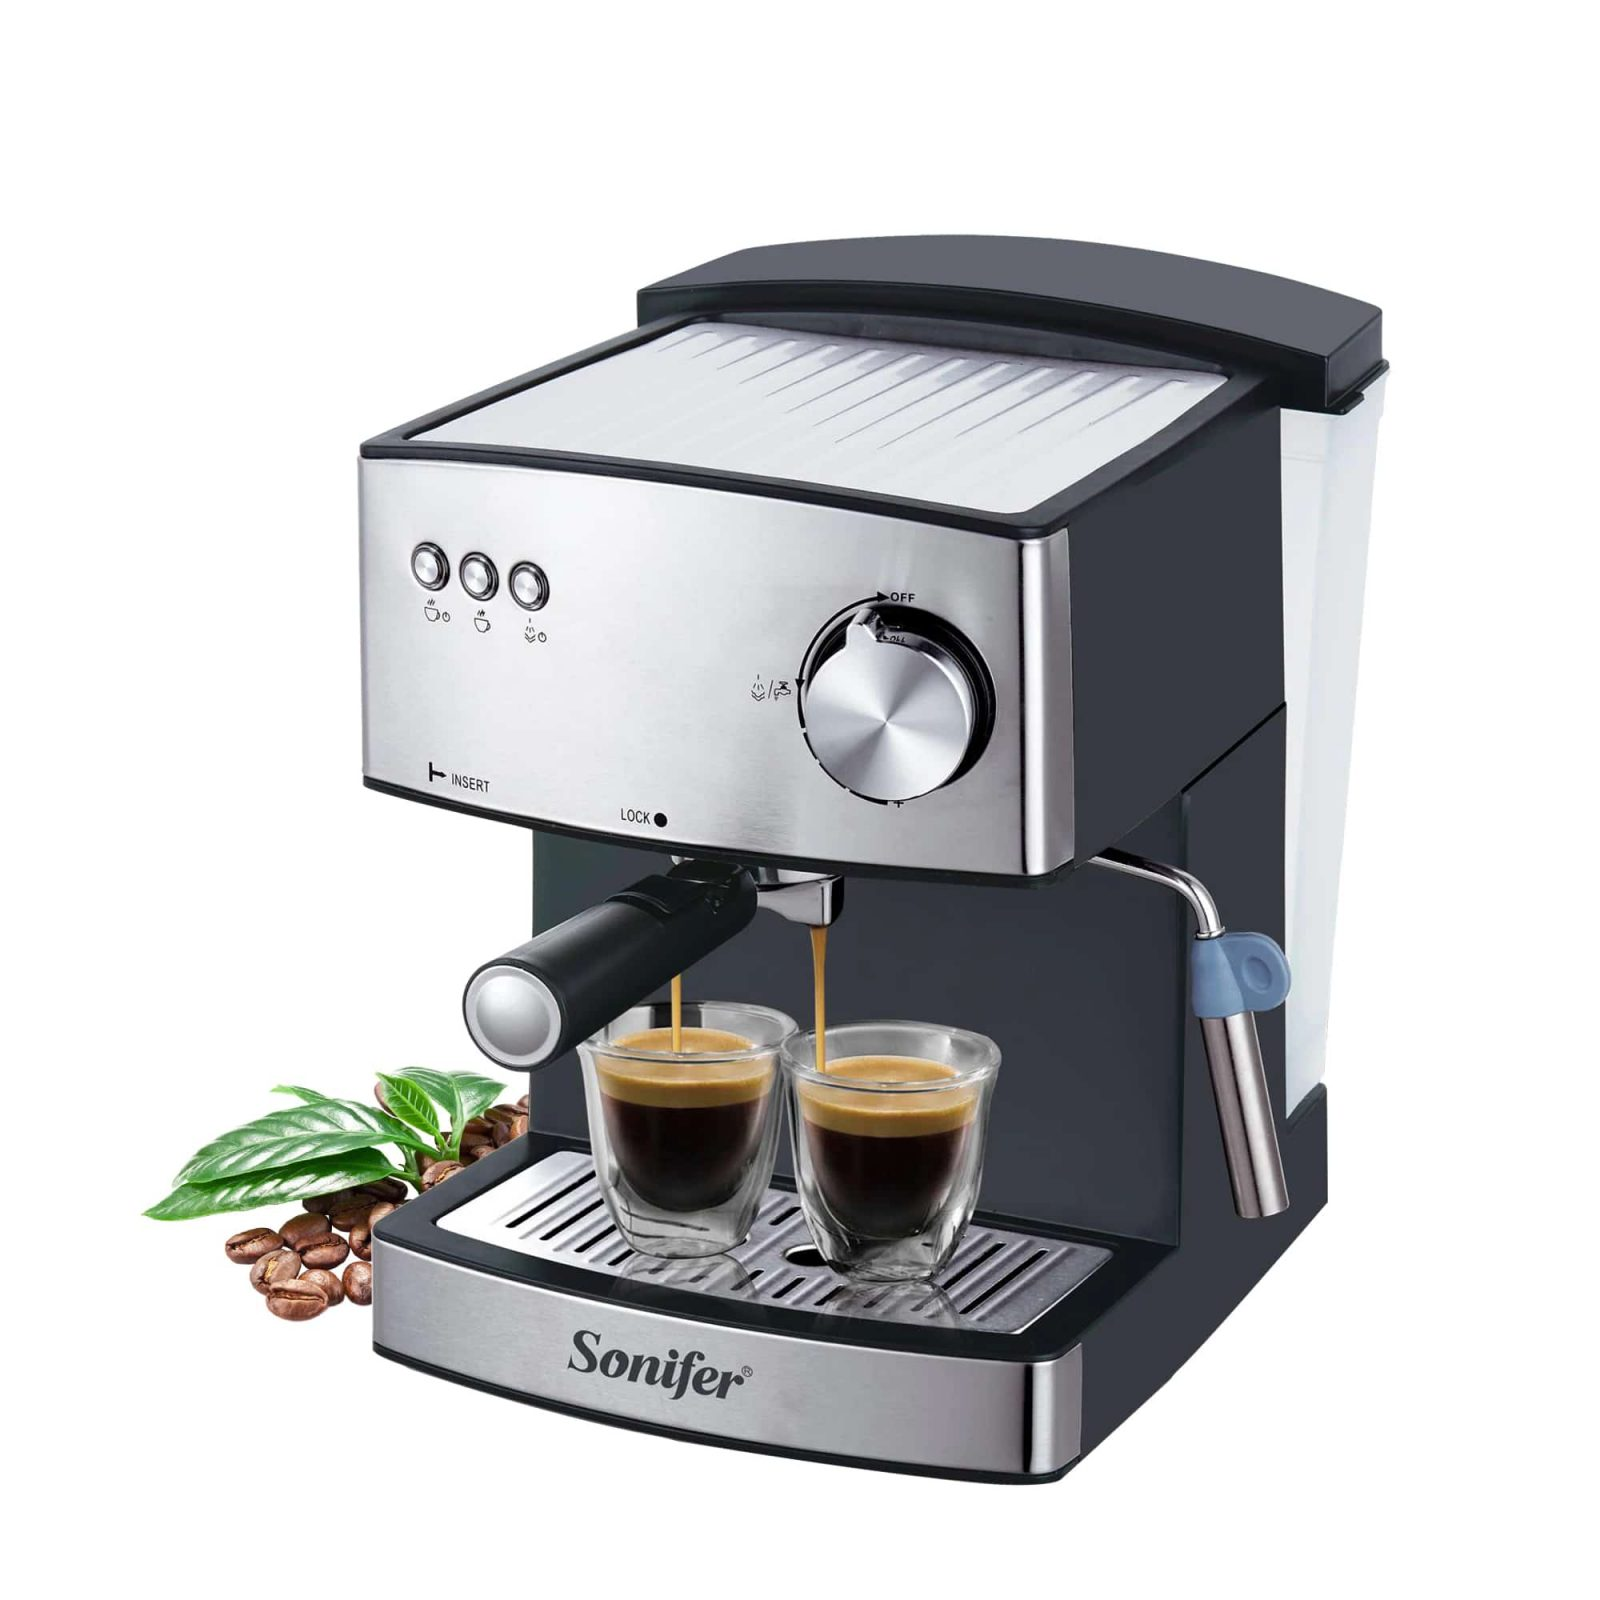 SONIFER Espresso Machine and Coffee Bean Grinder with Detachable and Transparent Water Tank